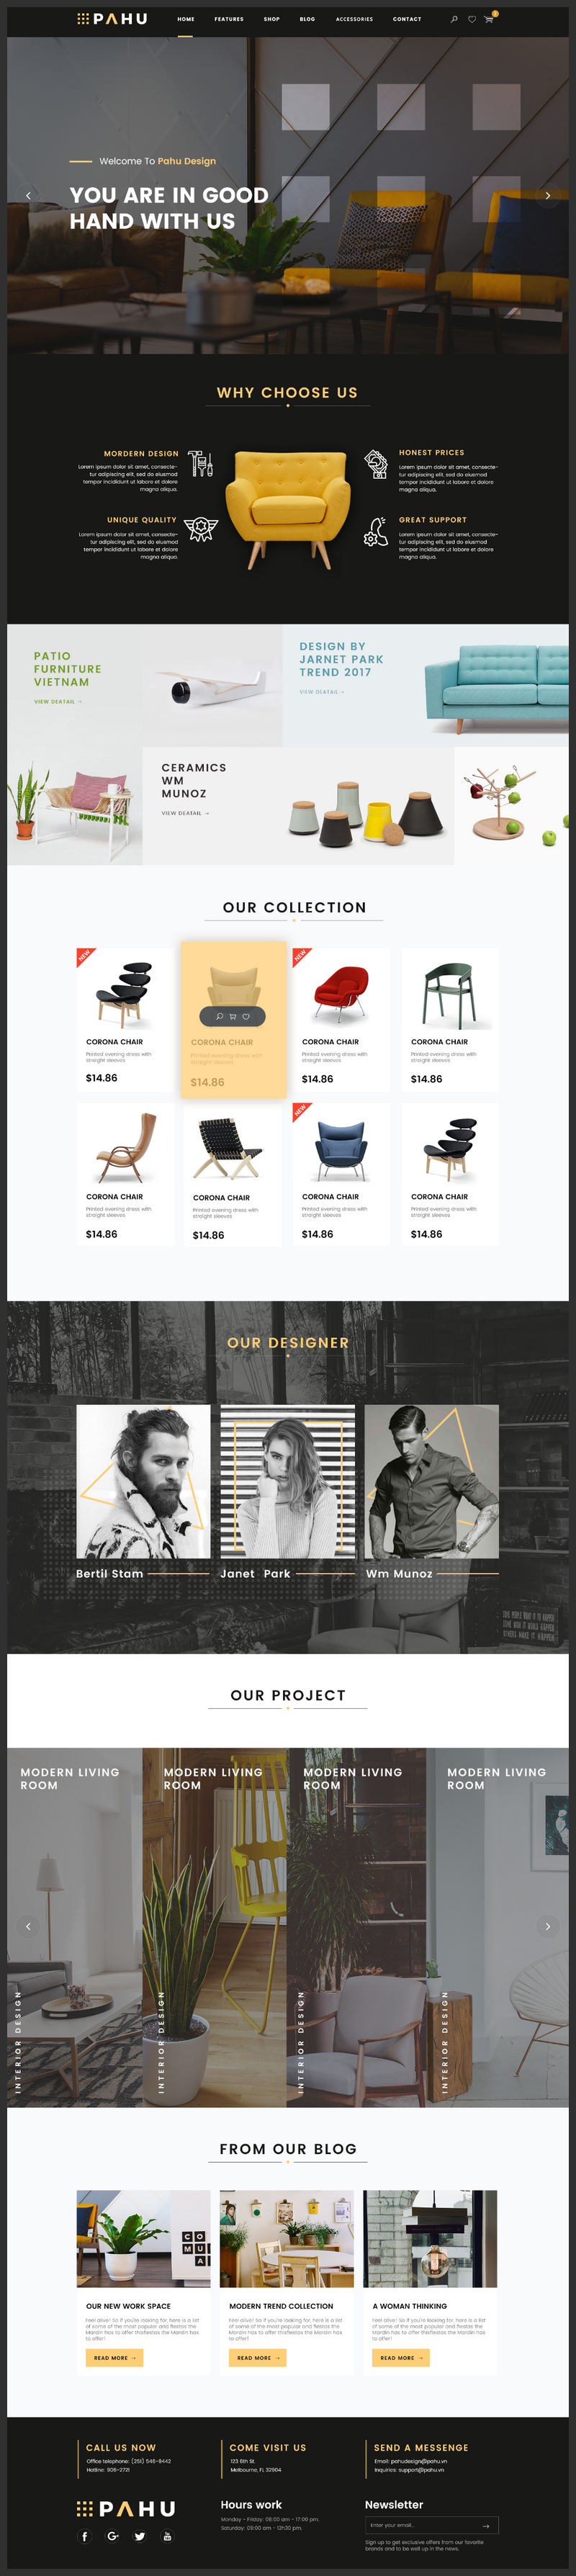 Interior design website template psd for Interior design sites